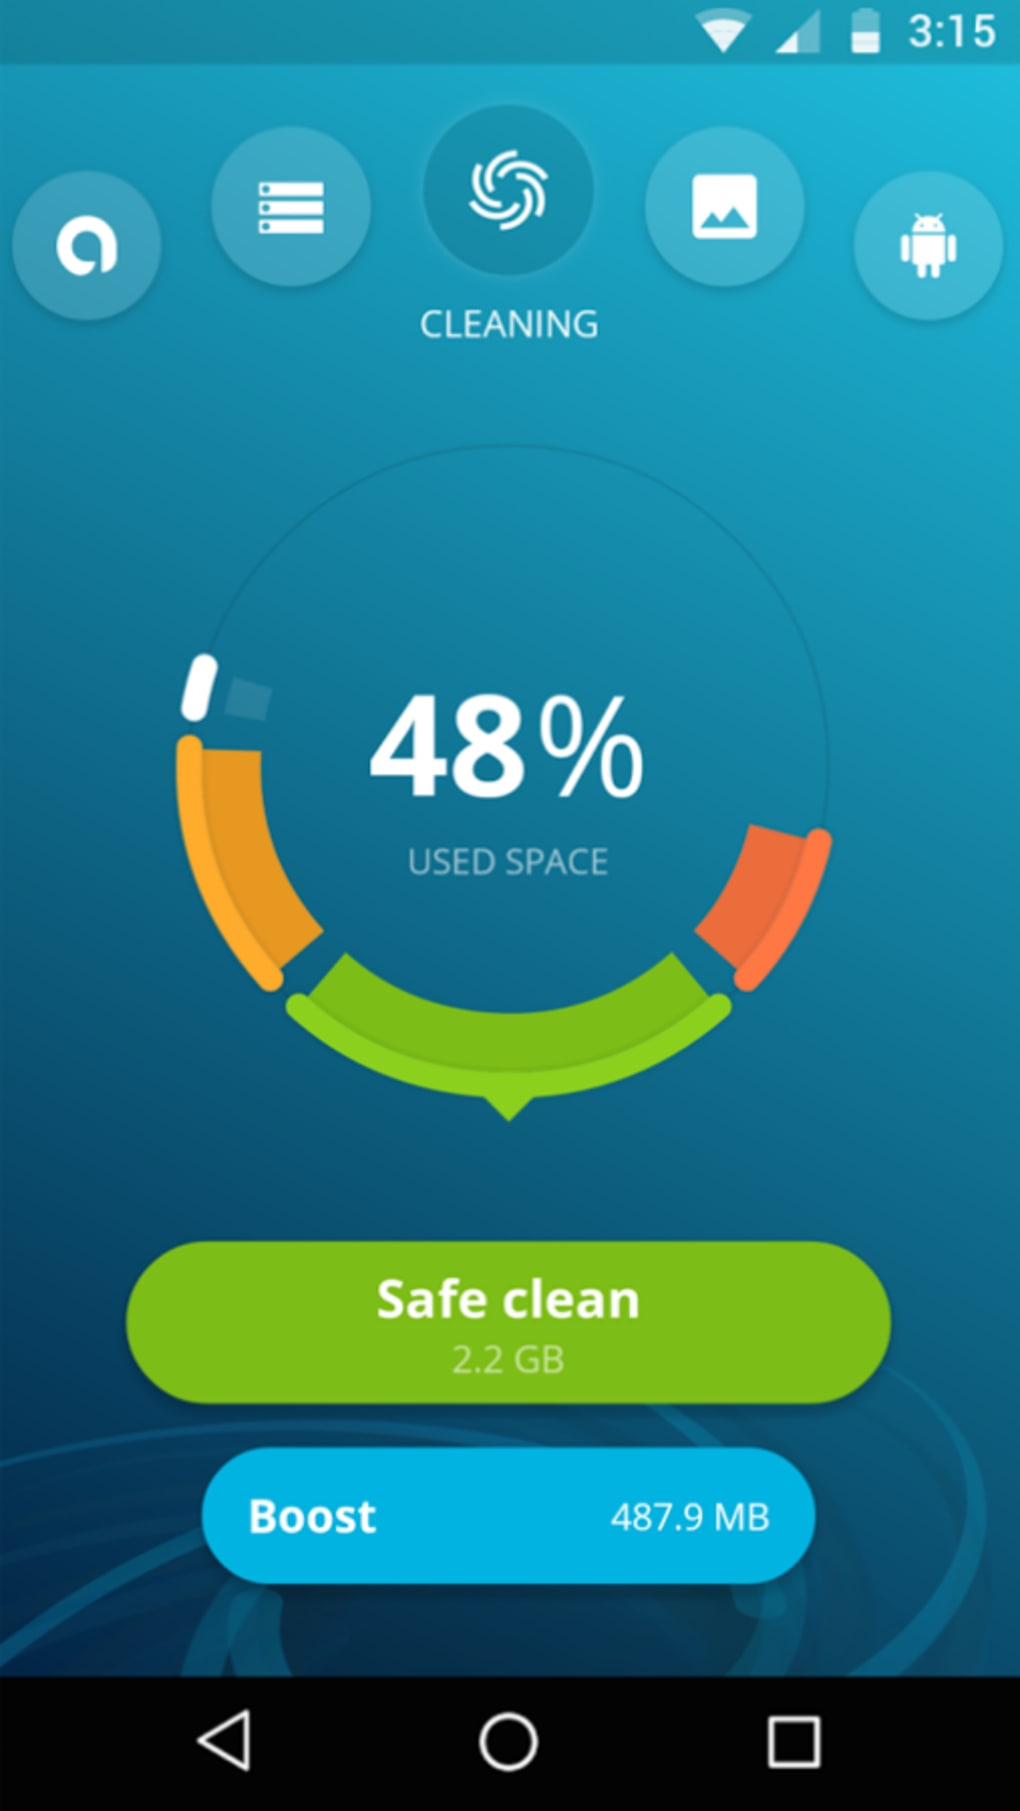 Free. Android. Avast Cleanup – An interesting application that will allow you to  clean your device without various difficulties and efforts. Efficient file management in the device memory and simple uninstallation of unused applications and unnecessary files.